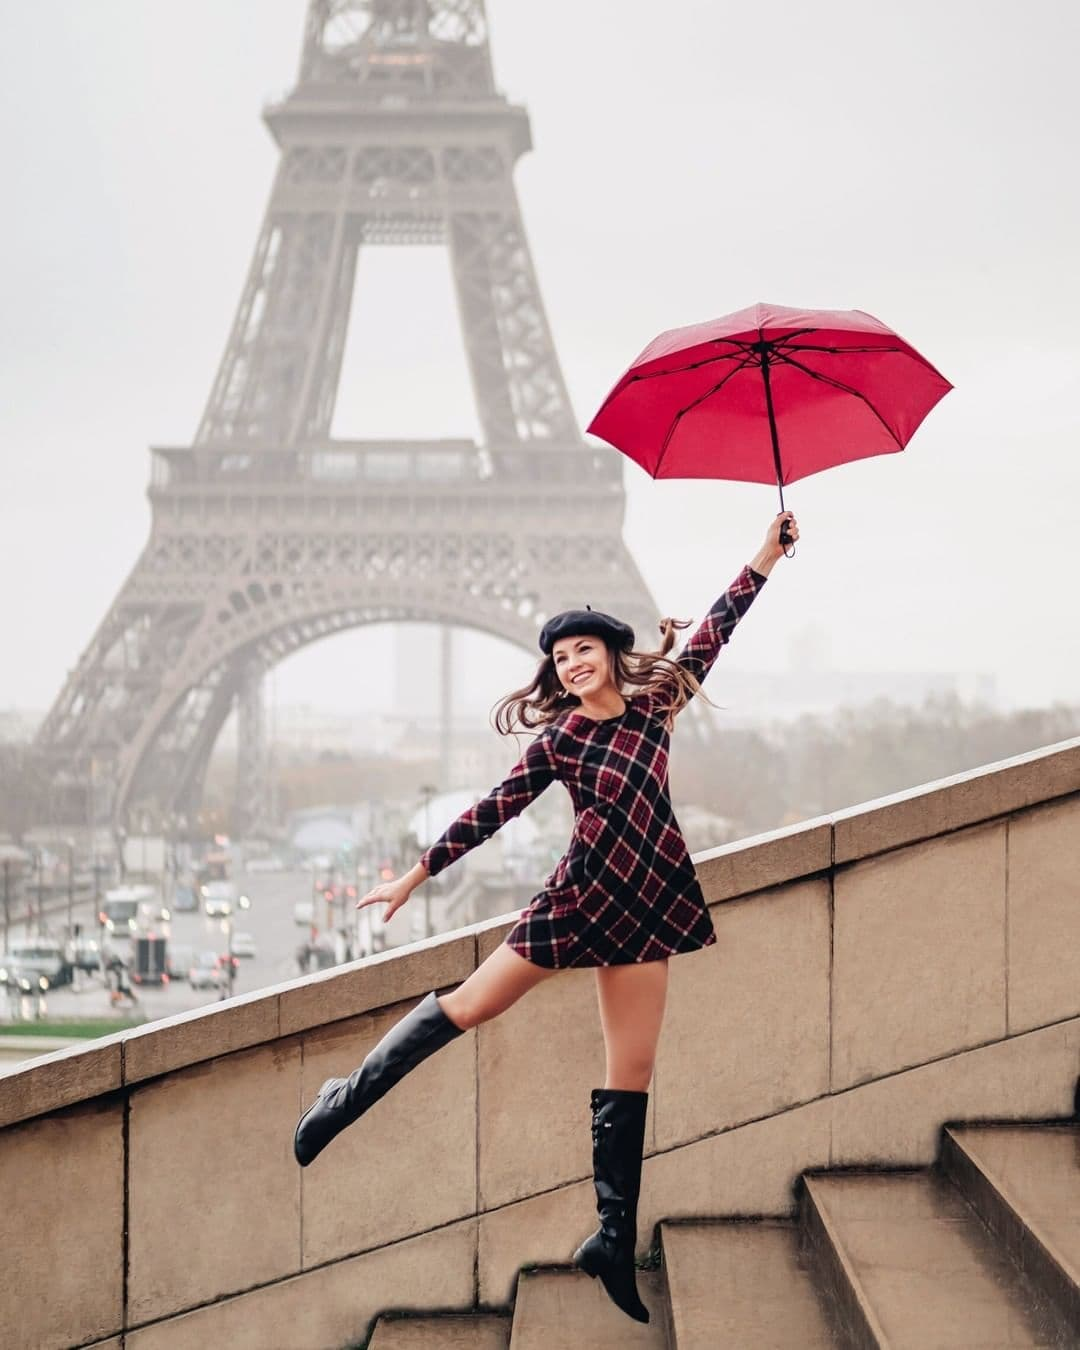 Playful photo of woman on Trocadero steps with umbrella in front of Eiffel Tower